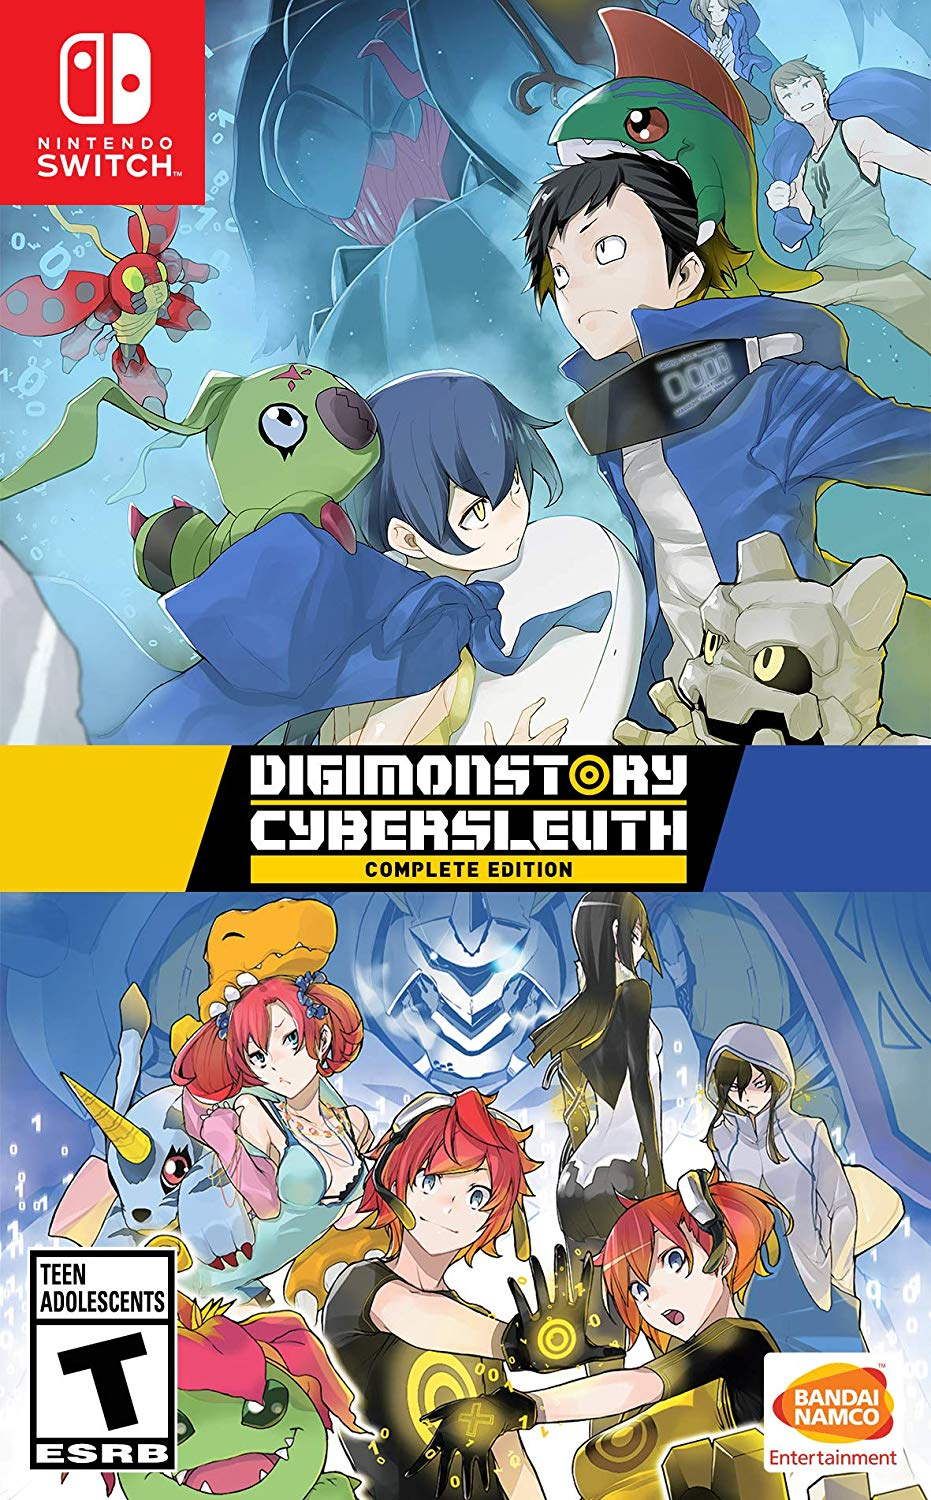 Digimon Story Cyber Sleuth Complete Edition